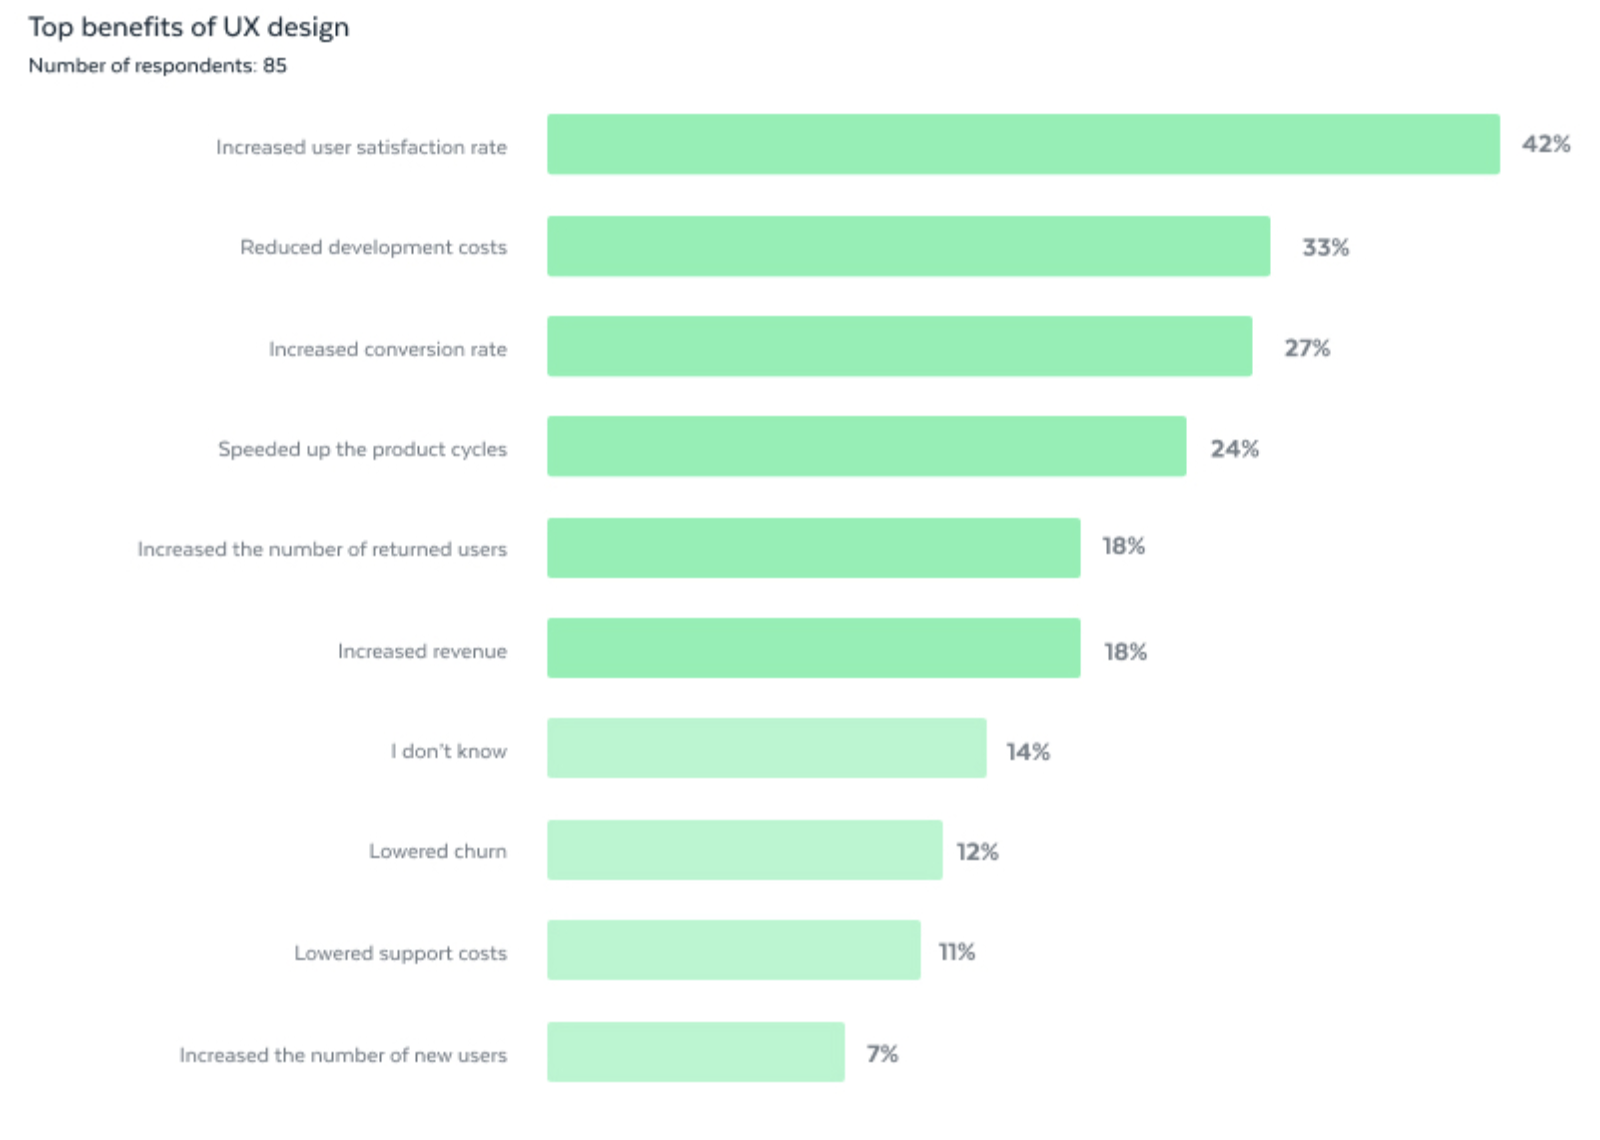 an image showing benefits of UX design: increased satisfaction rate, reduced development costs, increased conversion rate